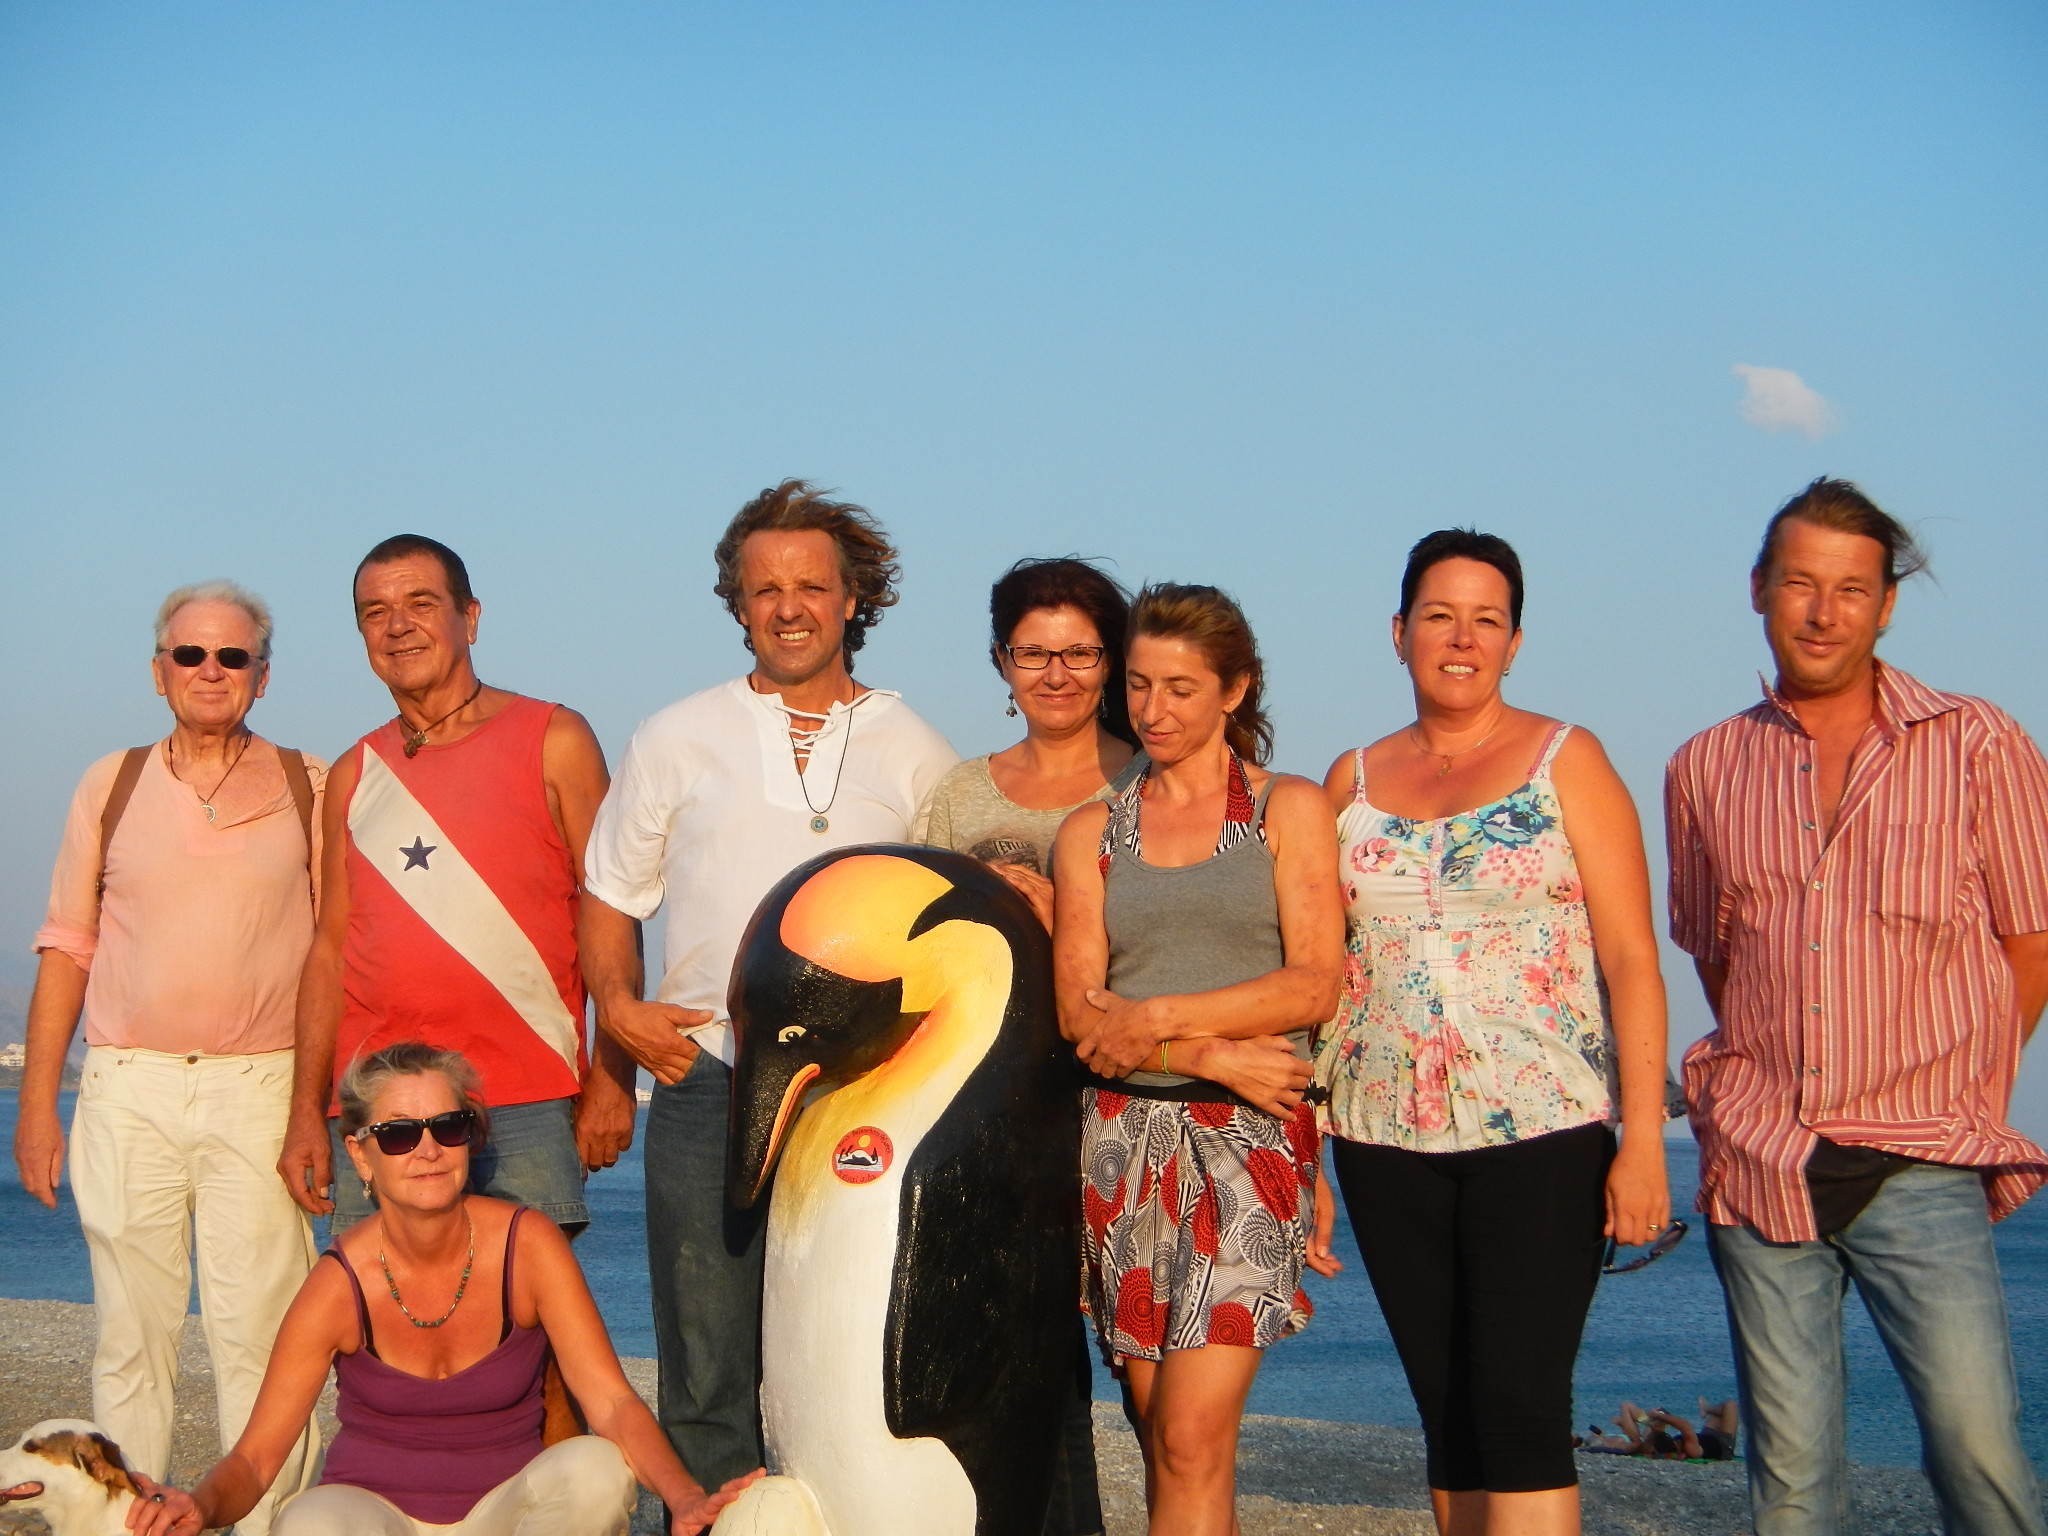 Pale the Pinguin and the artists